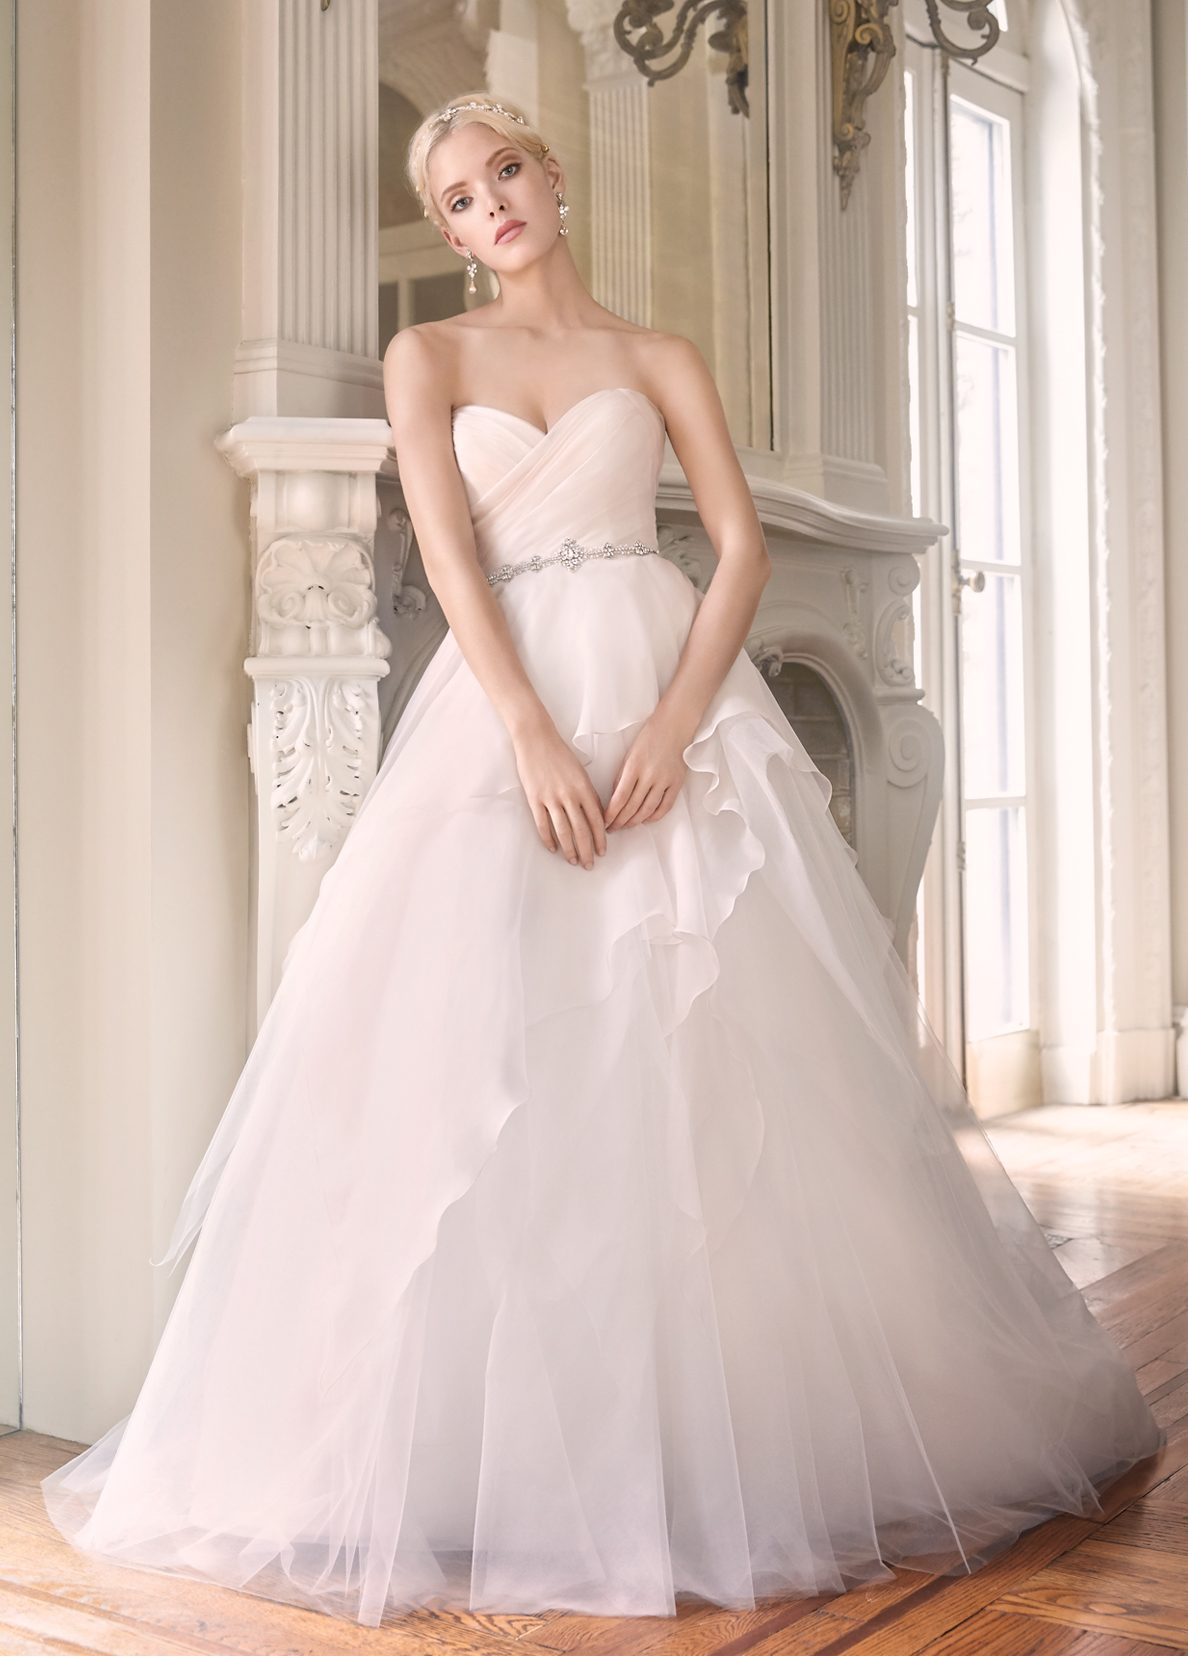 Ball Gown Wedding Dress By Alvina Valenta Image 1 Zoomed In